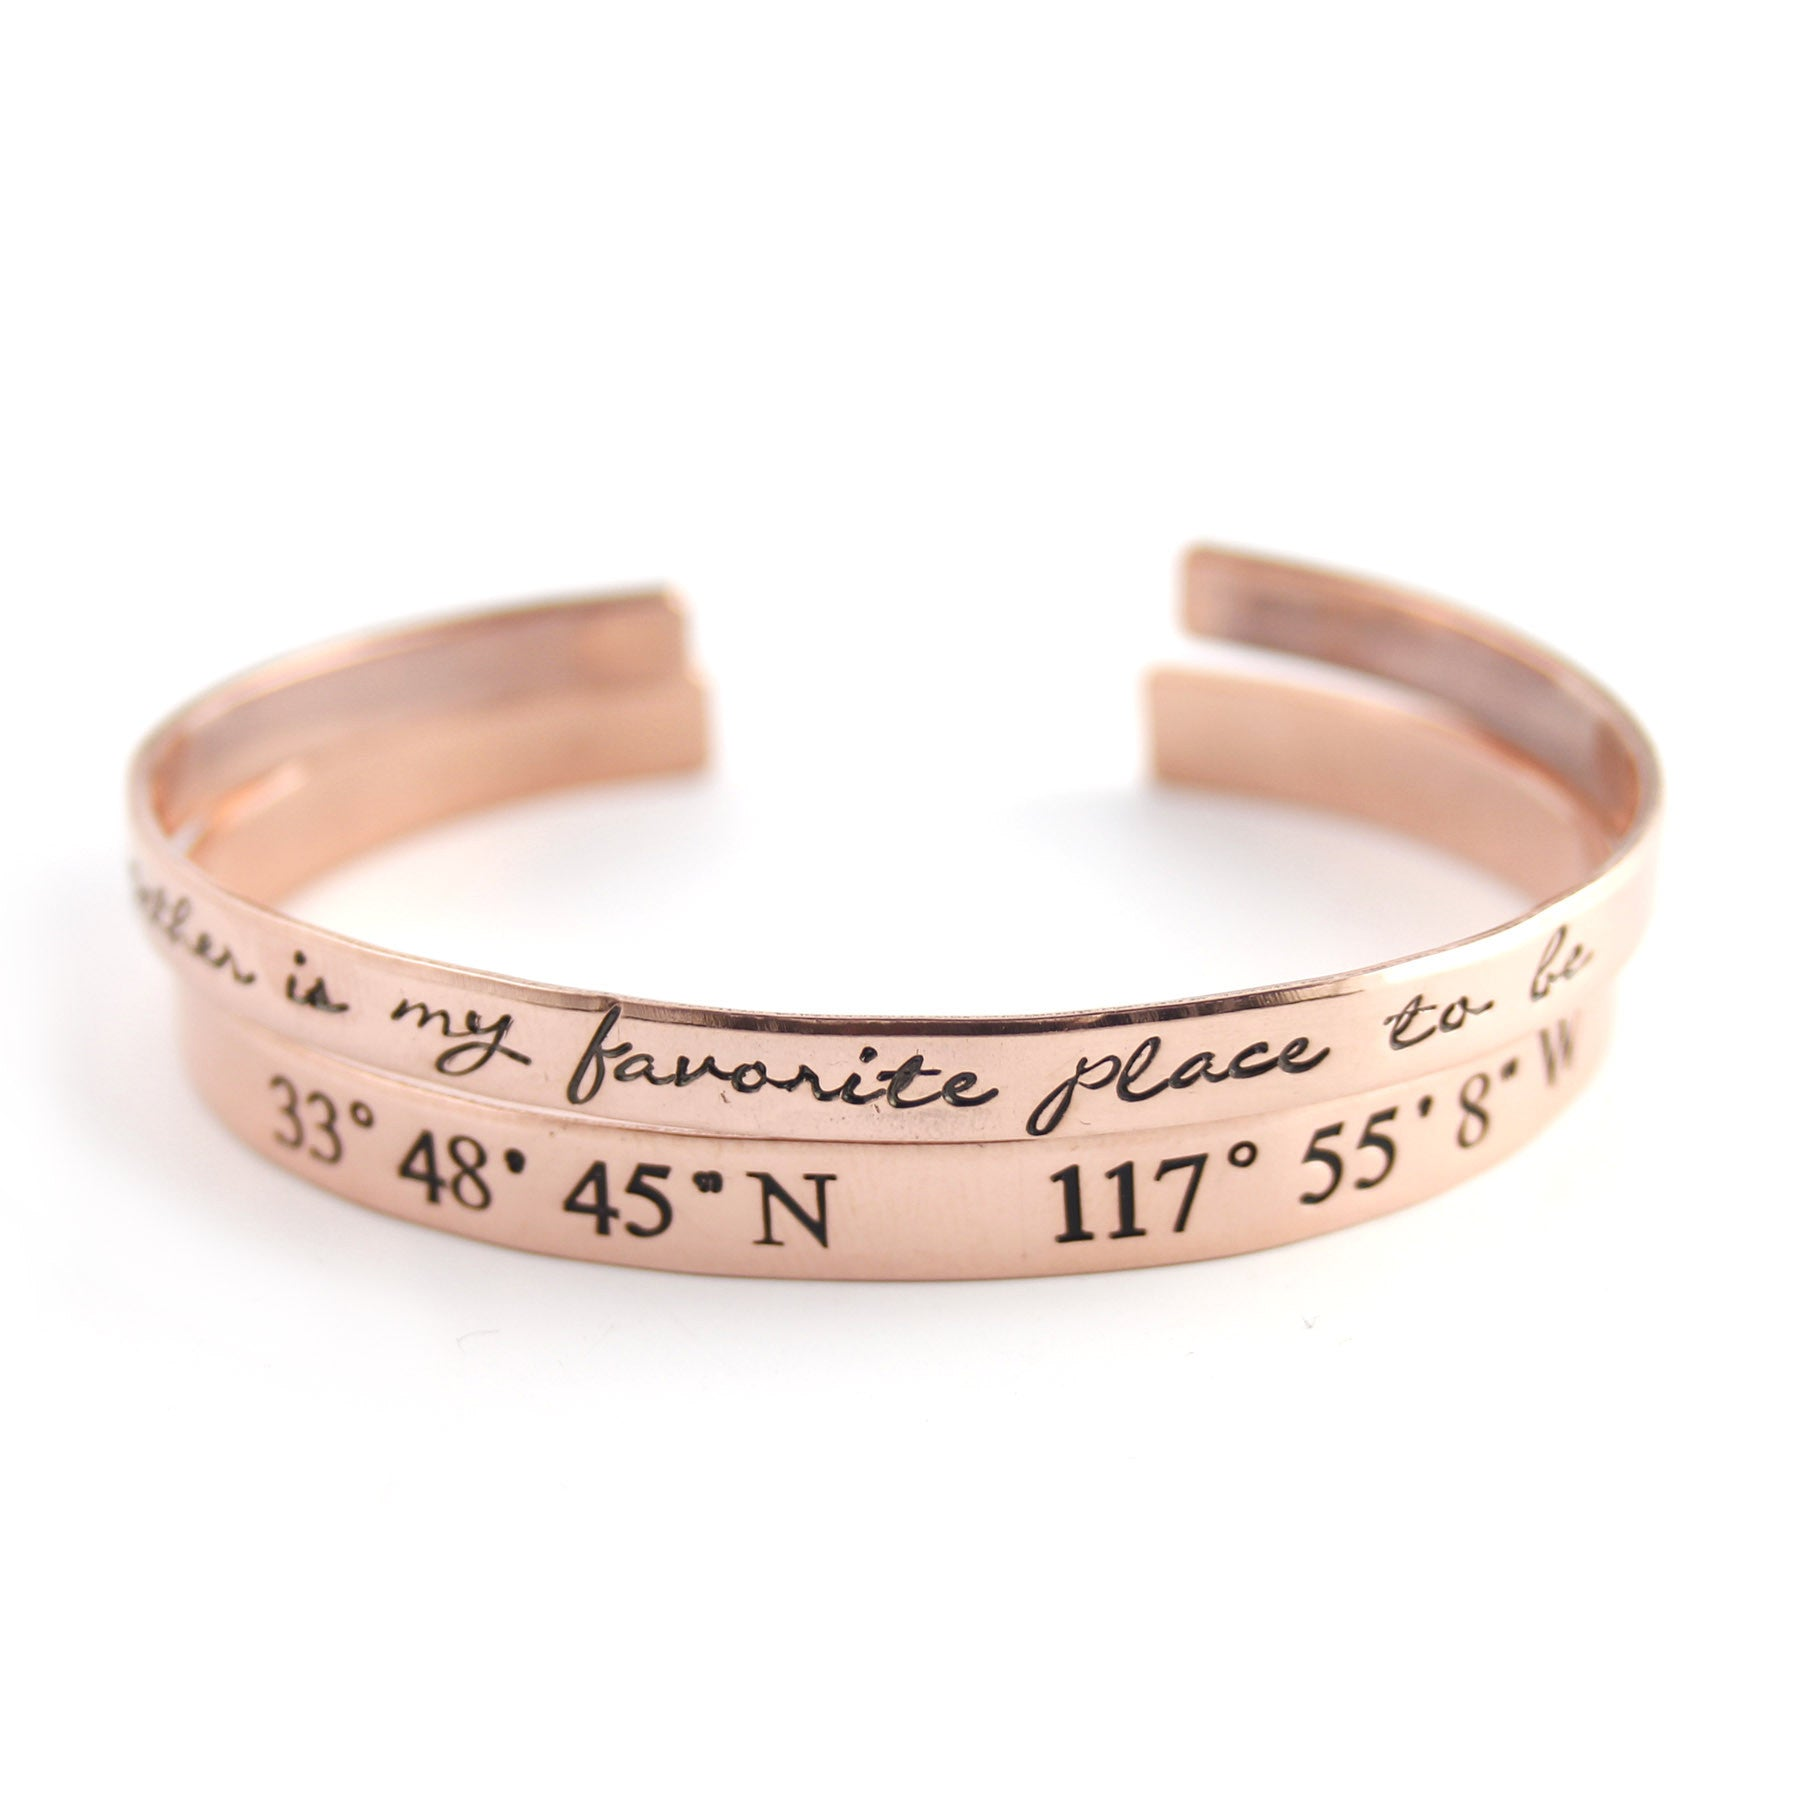 bracelets collection legend bracelet coordinates lat long c